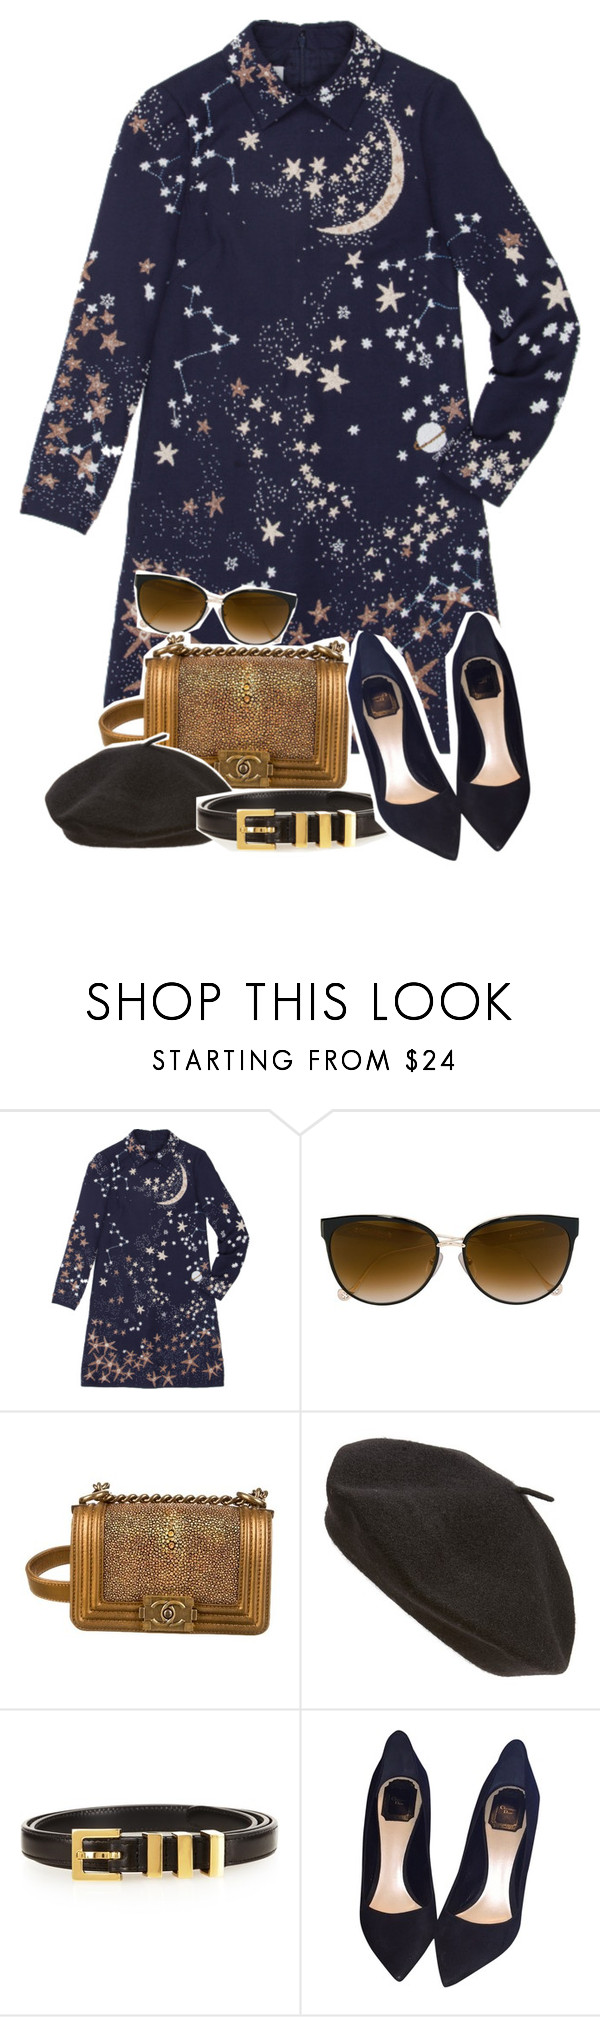 """Untitled #955"" by jawind ❤ liked on Polyvore featuring Valentino, Chrome Hearts, Chanel, Parkhurst, Yves Saint Laurent and Christian Dior"